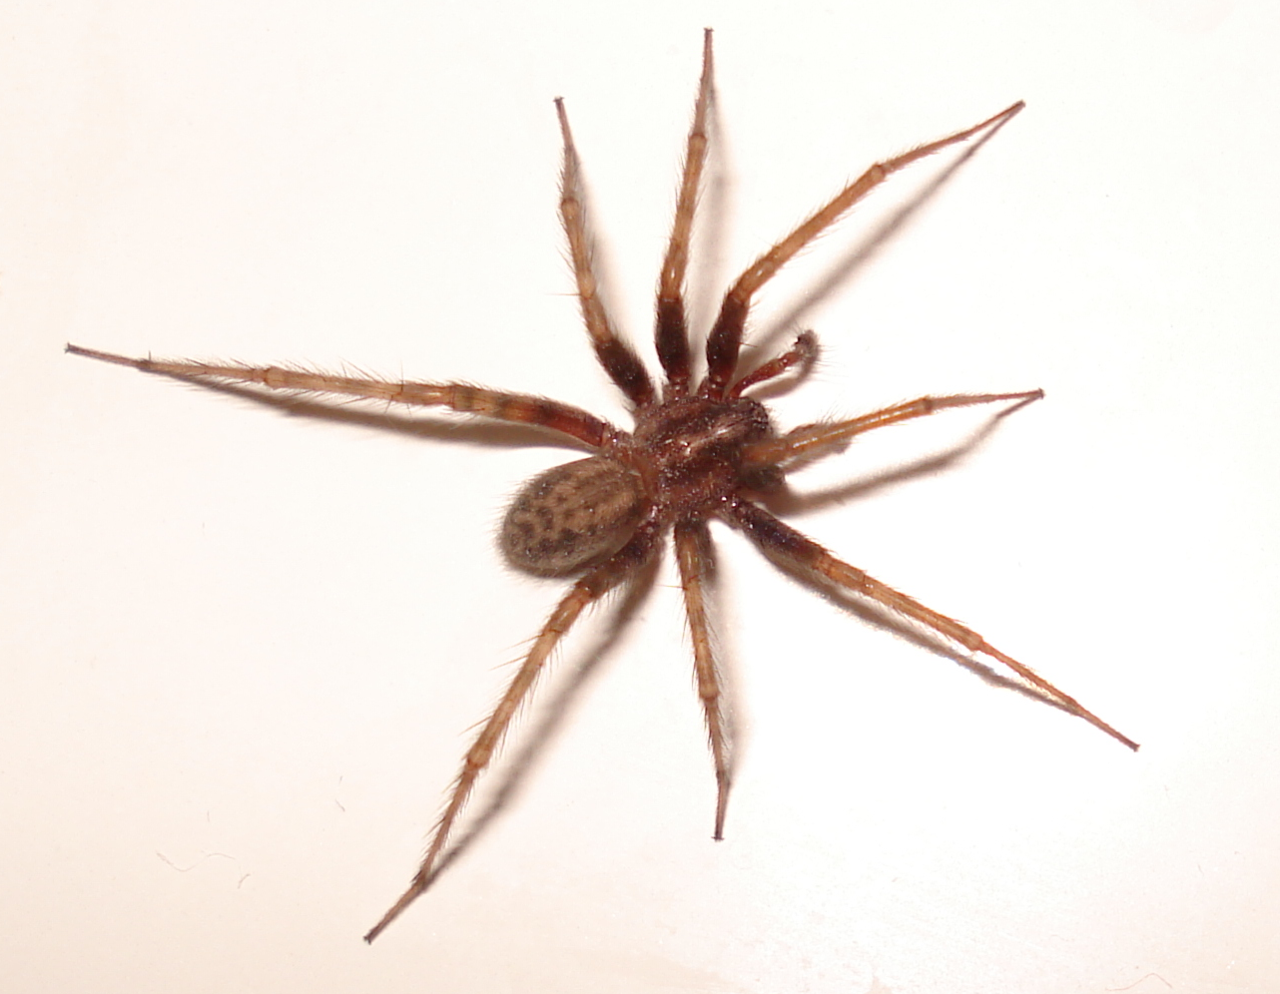 Common House Spiders: What's Around My Home? - The ...